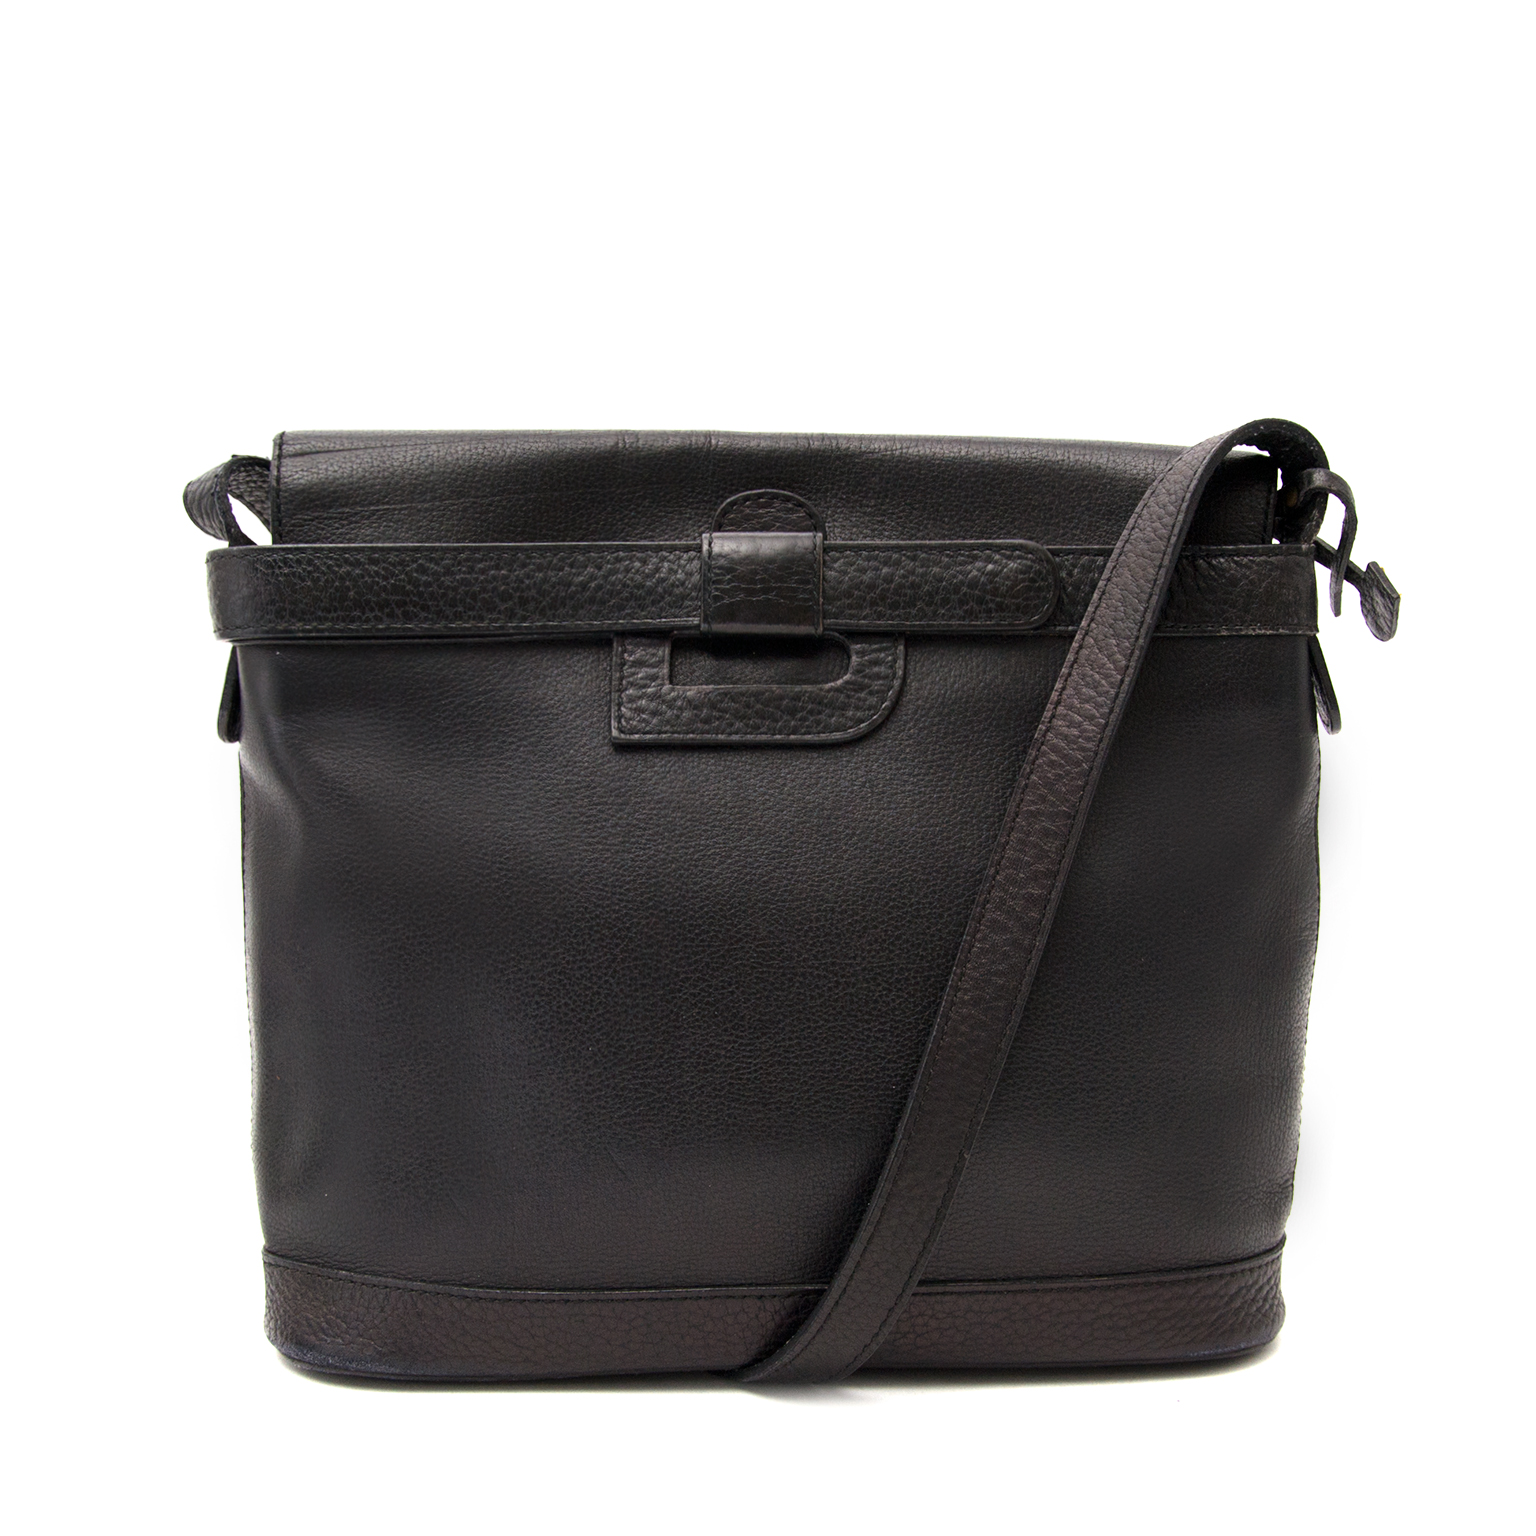 Buy a secondhand Delvaux Black Leather Cross Body Bag online